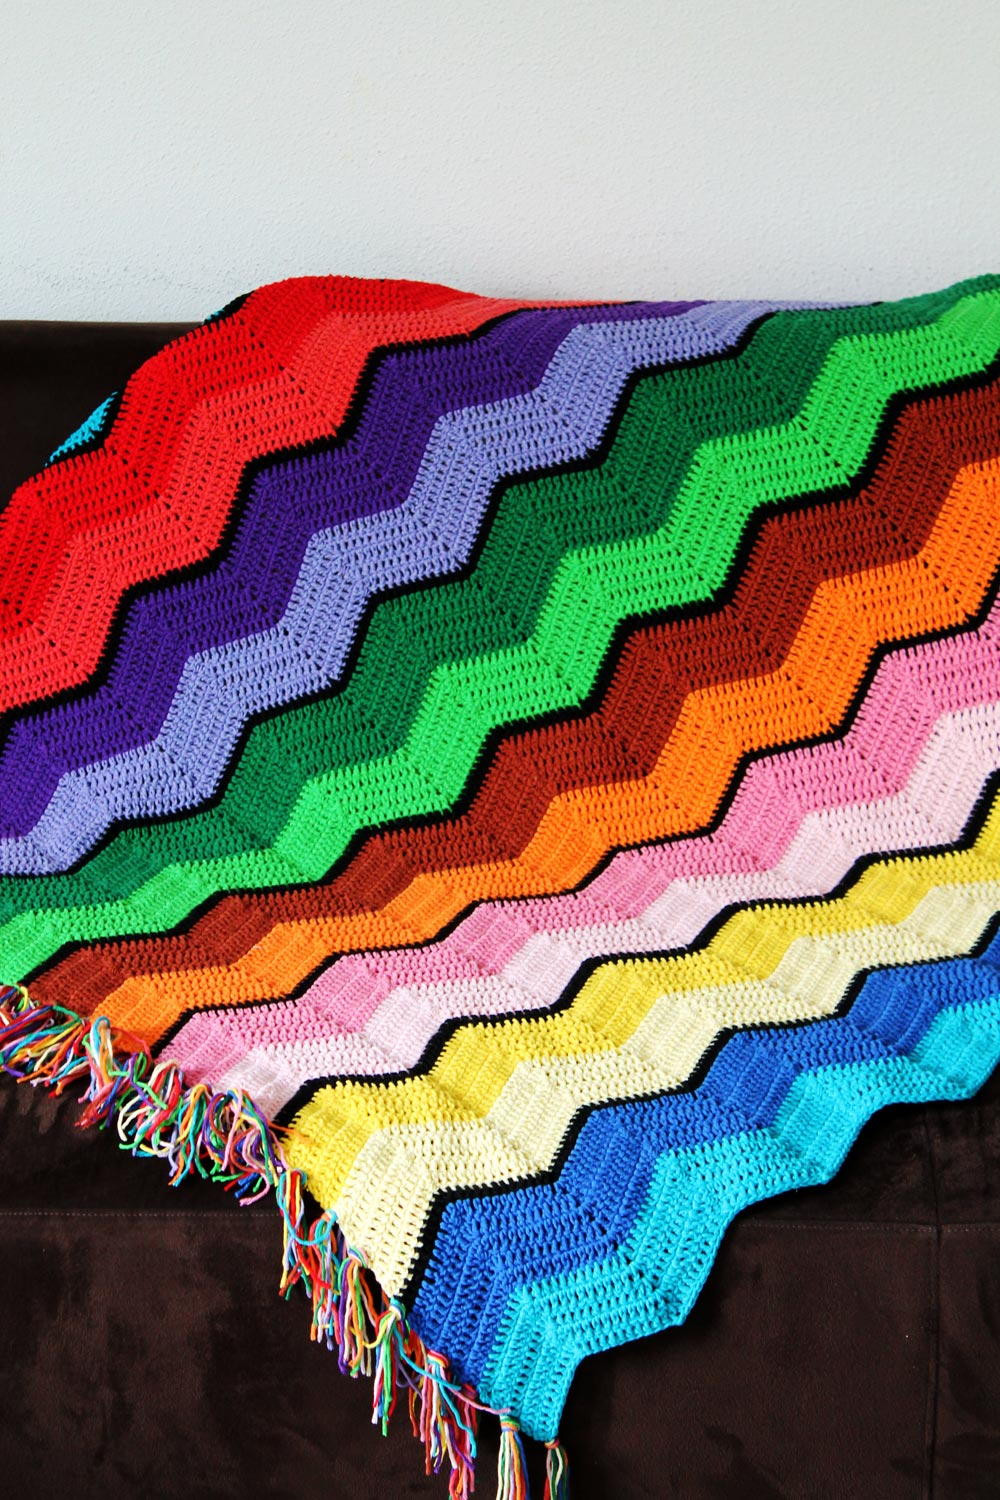 Free Crochet Blanket Patterns Unique 51 Free Crochet Blanket Patterns for Beginners Of Superb 44 Models Free Crochet Blanket Patterns